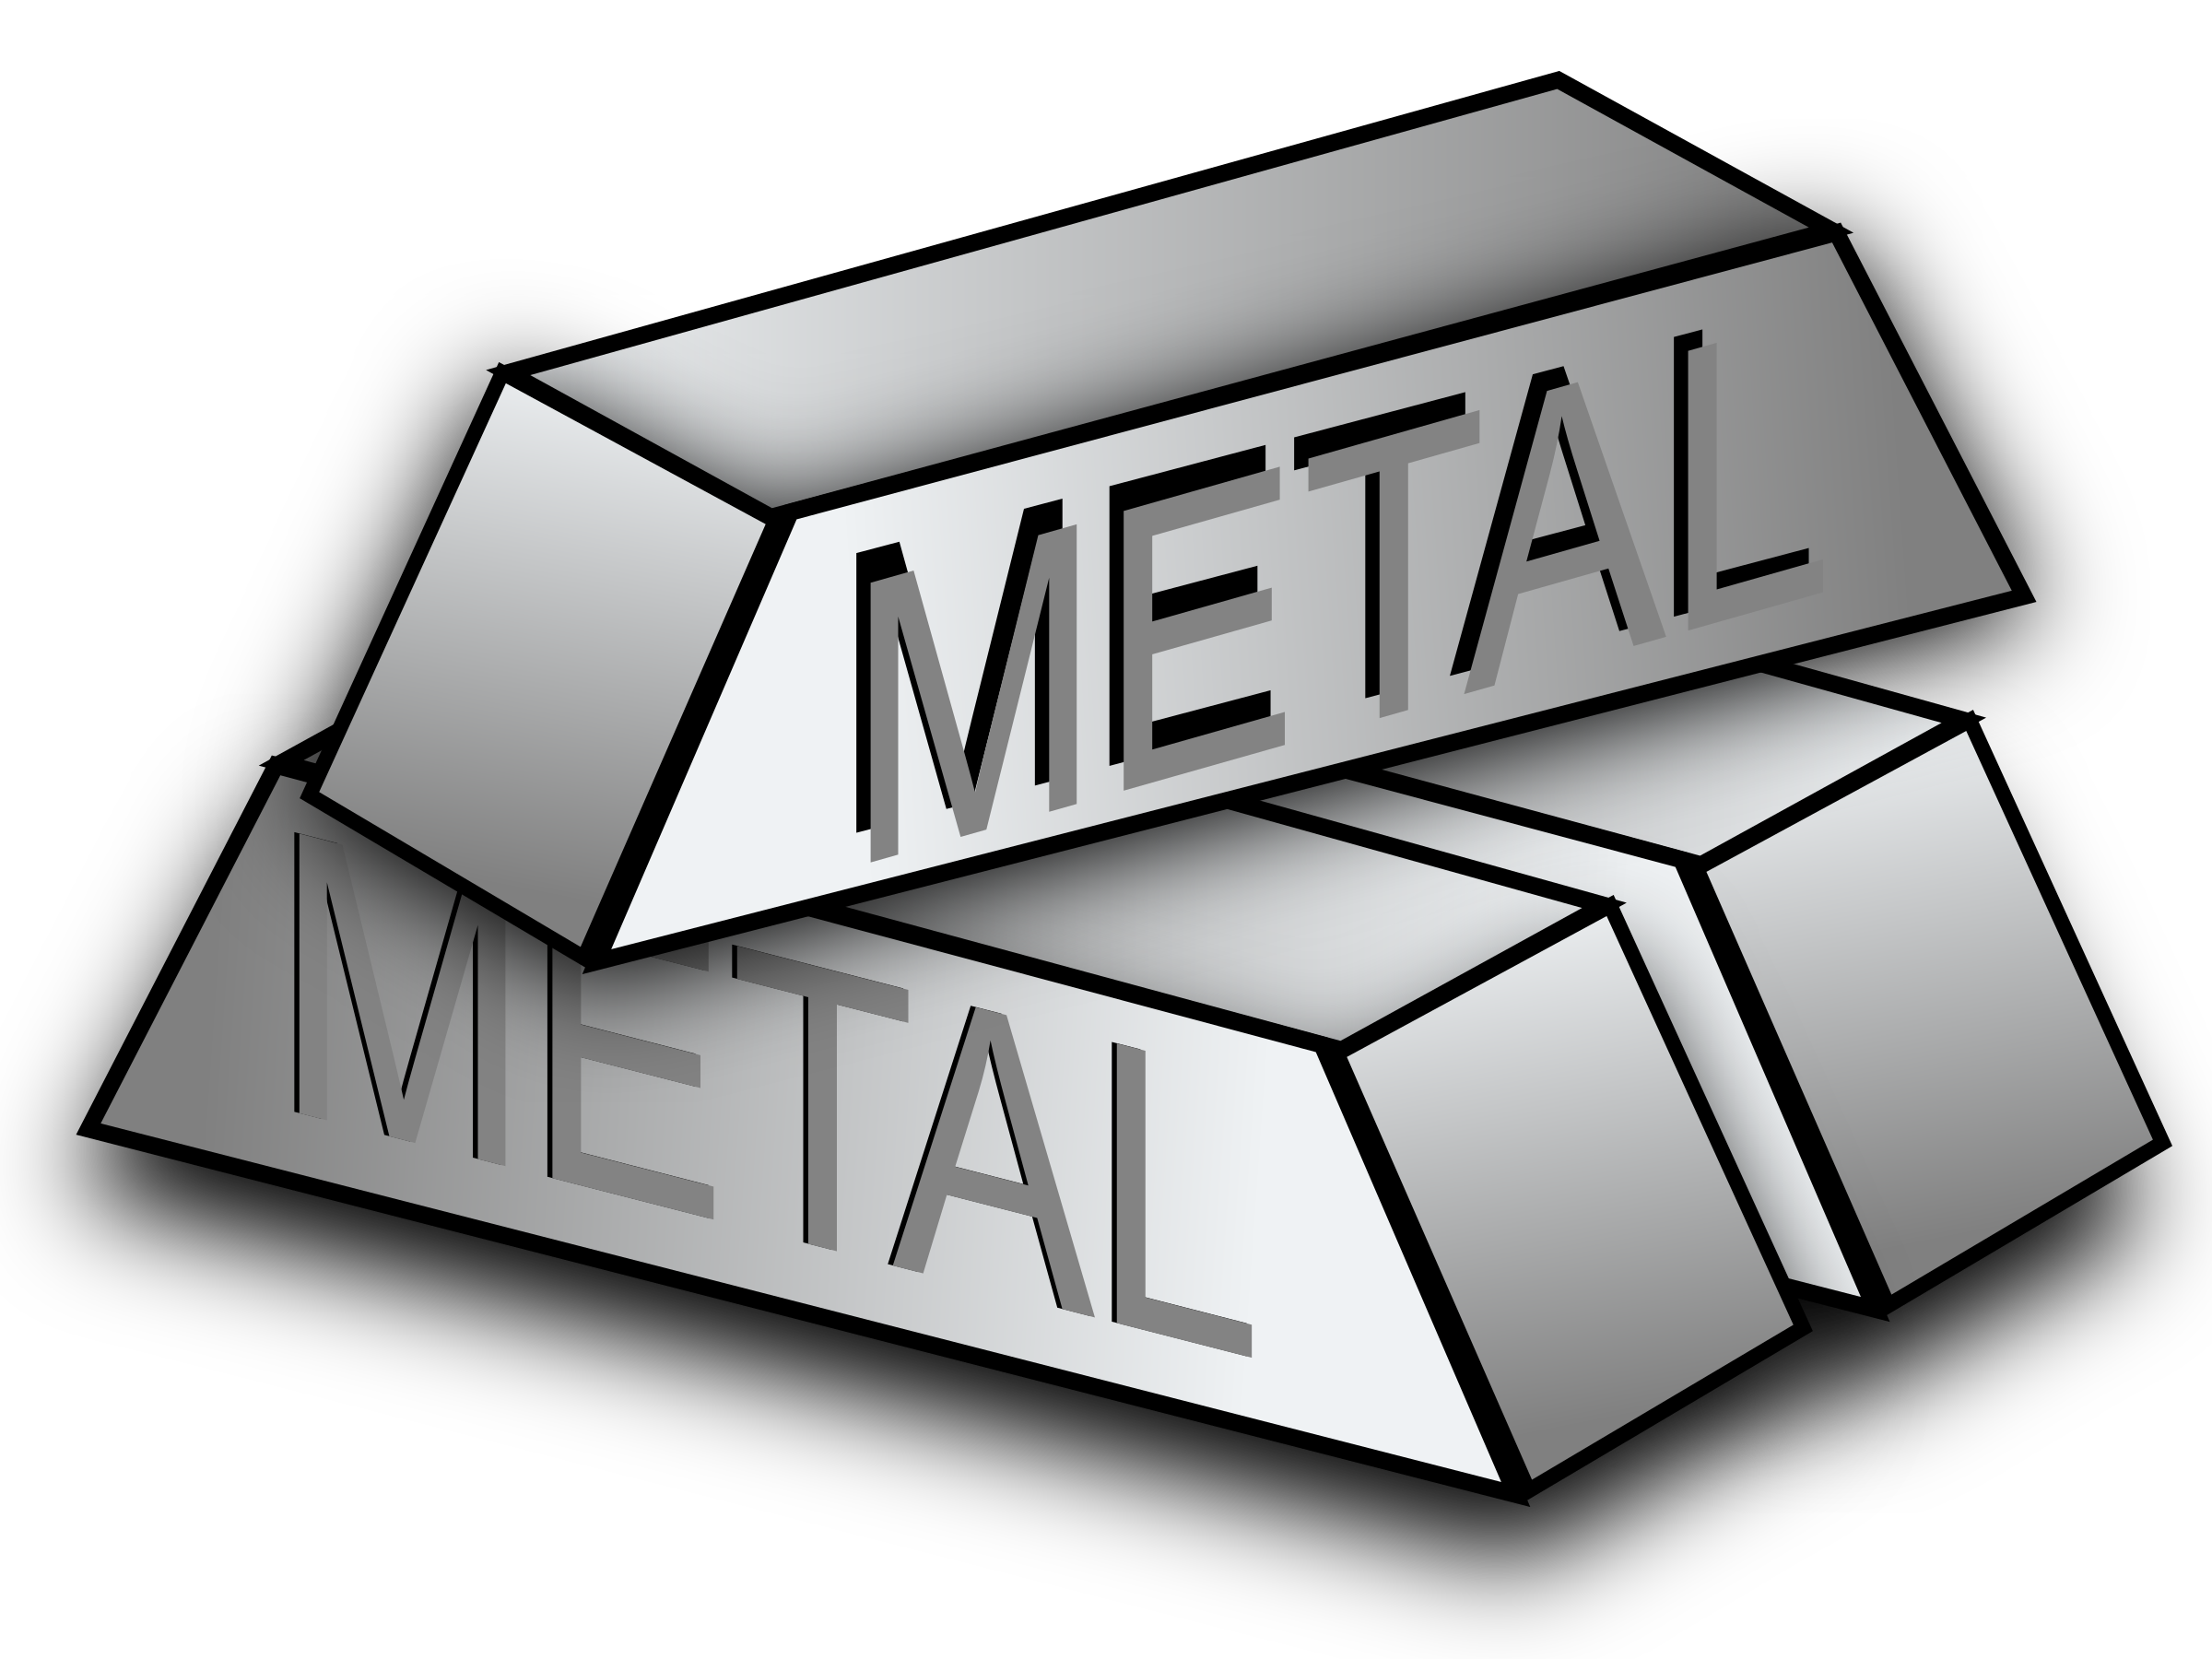 metal icon by Farmeral